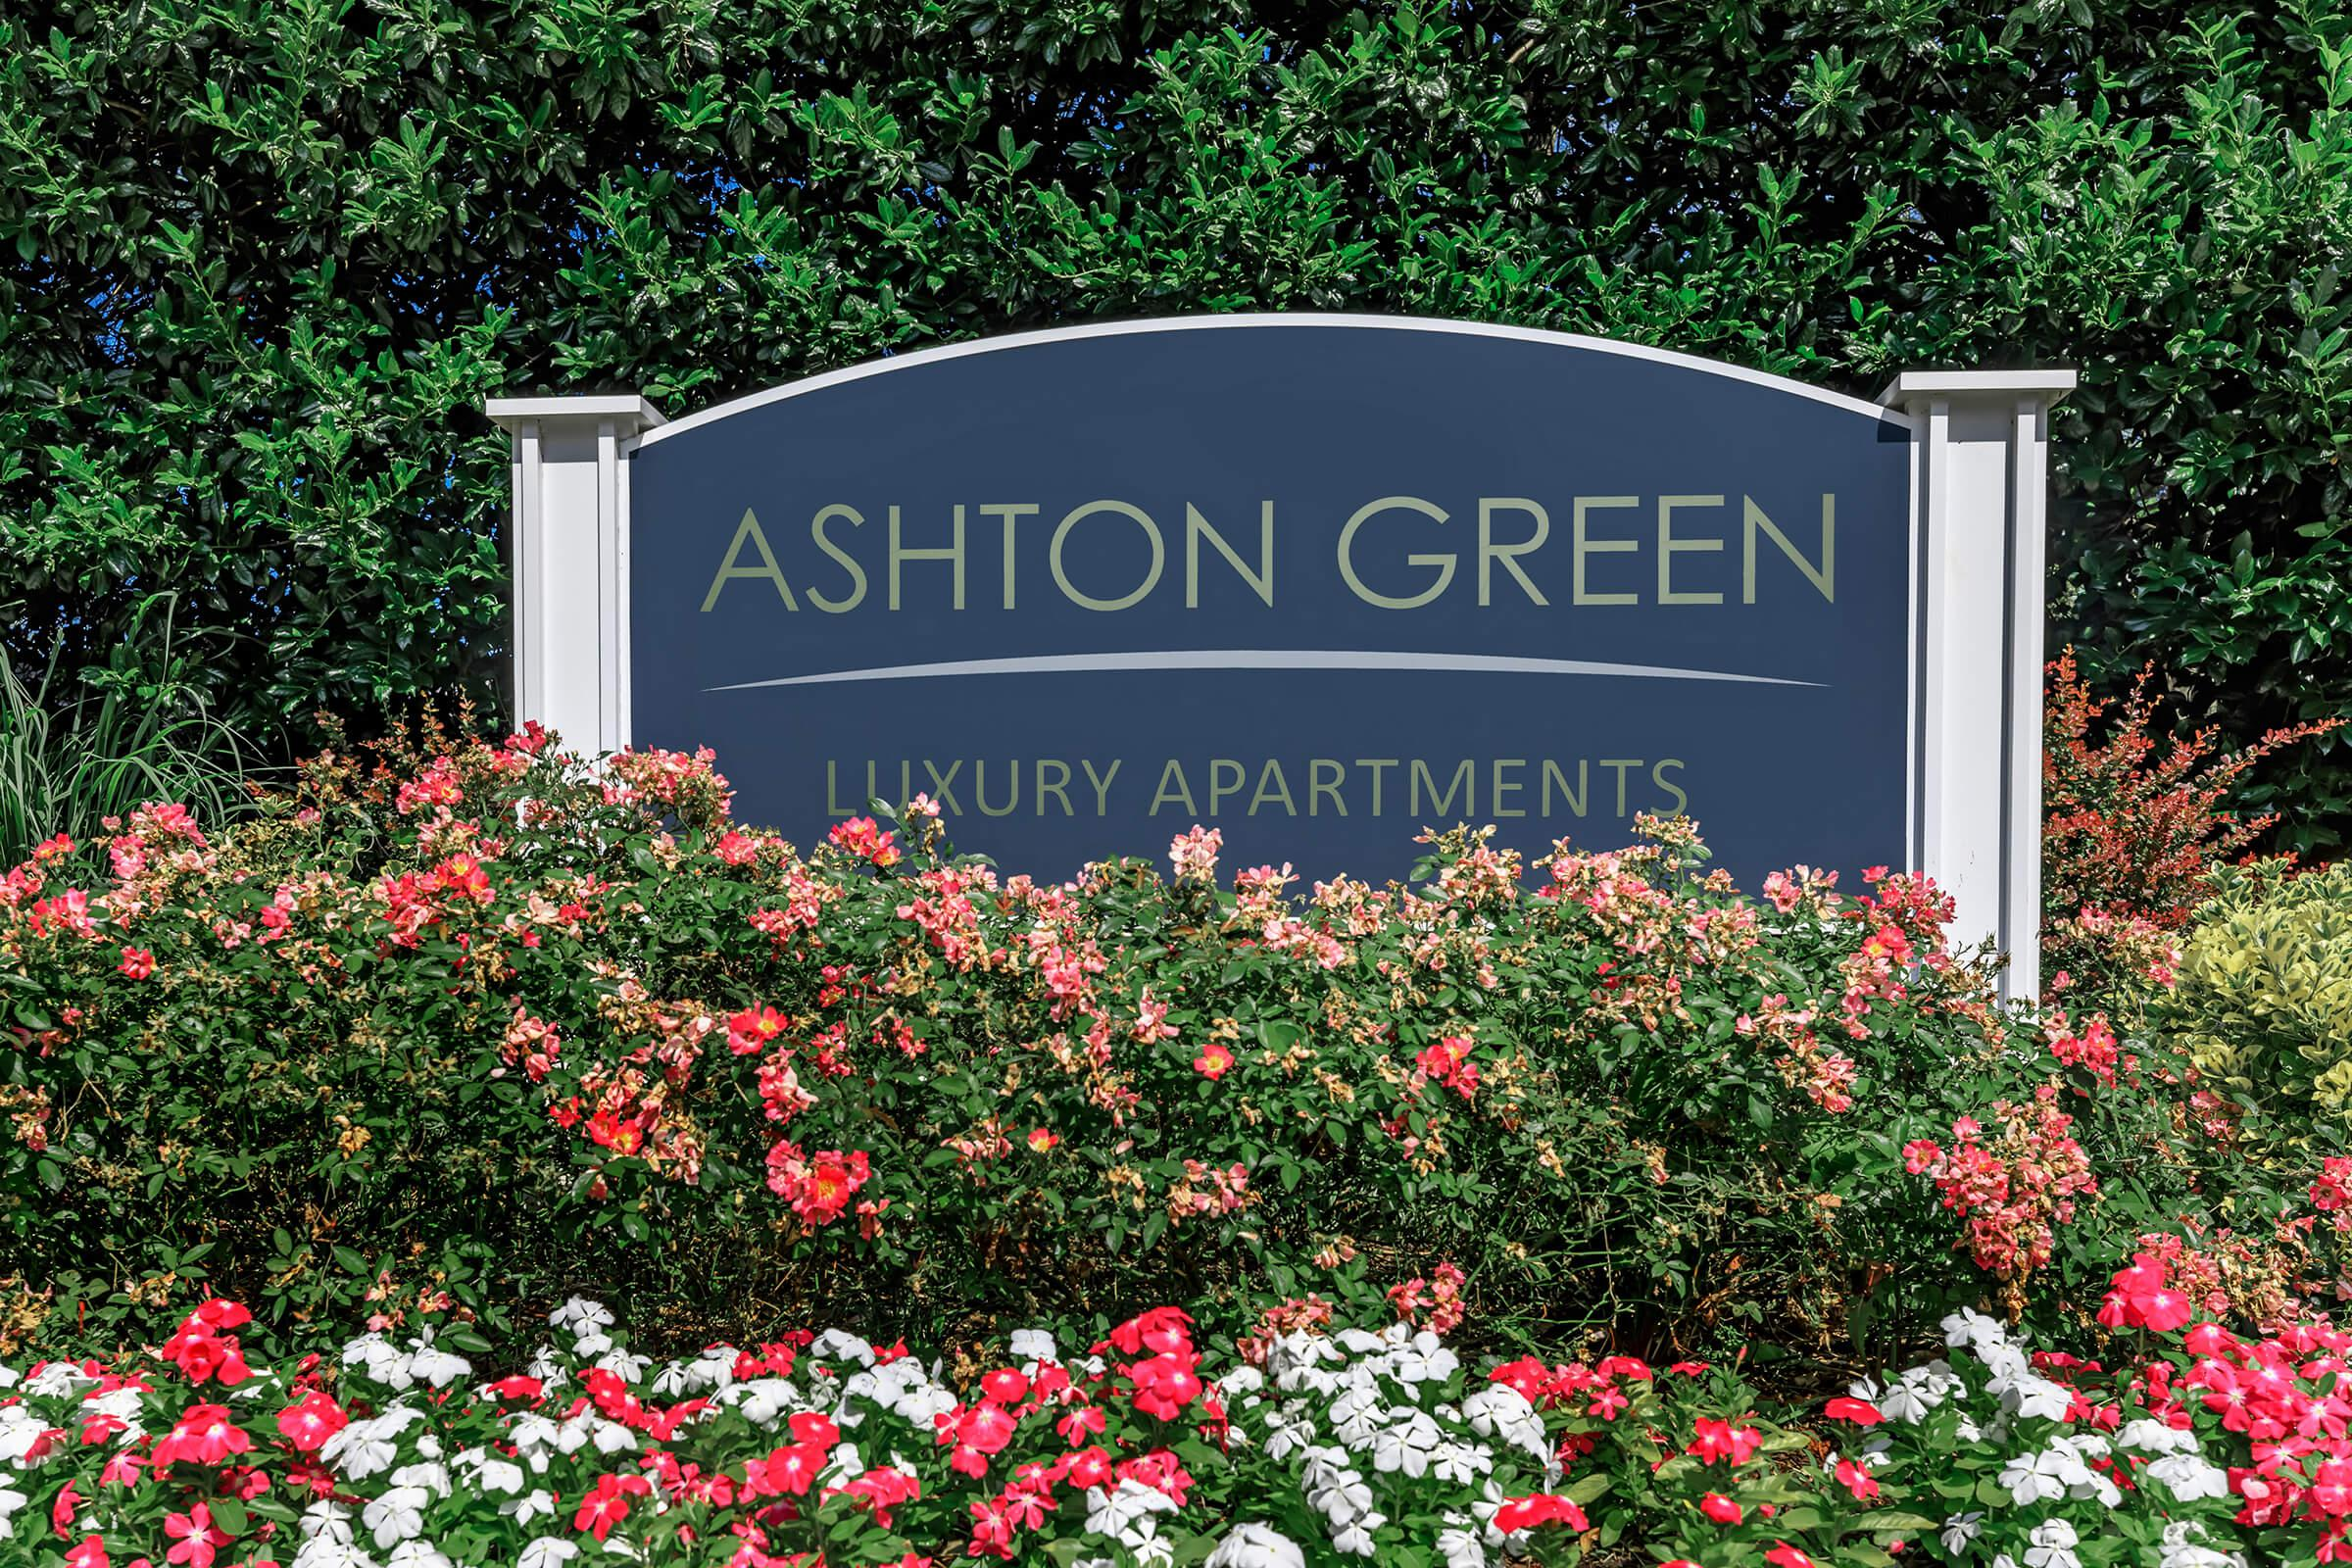 Landscaping at Ashton Green Apartments in Columbia, MD